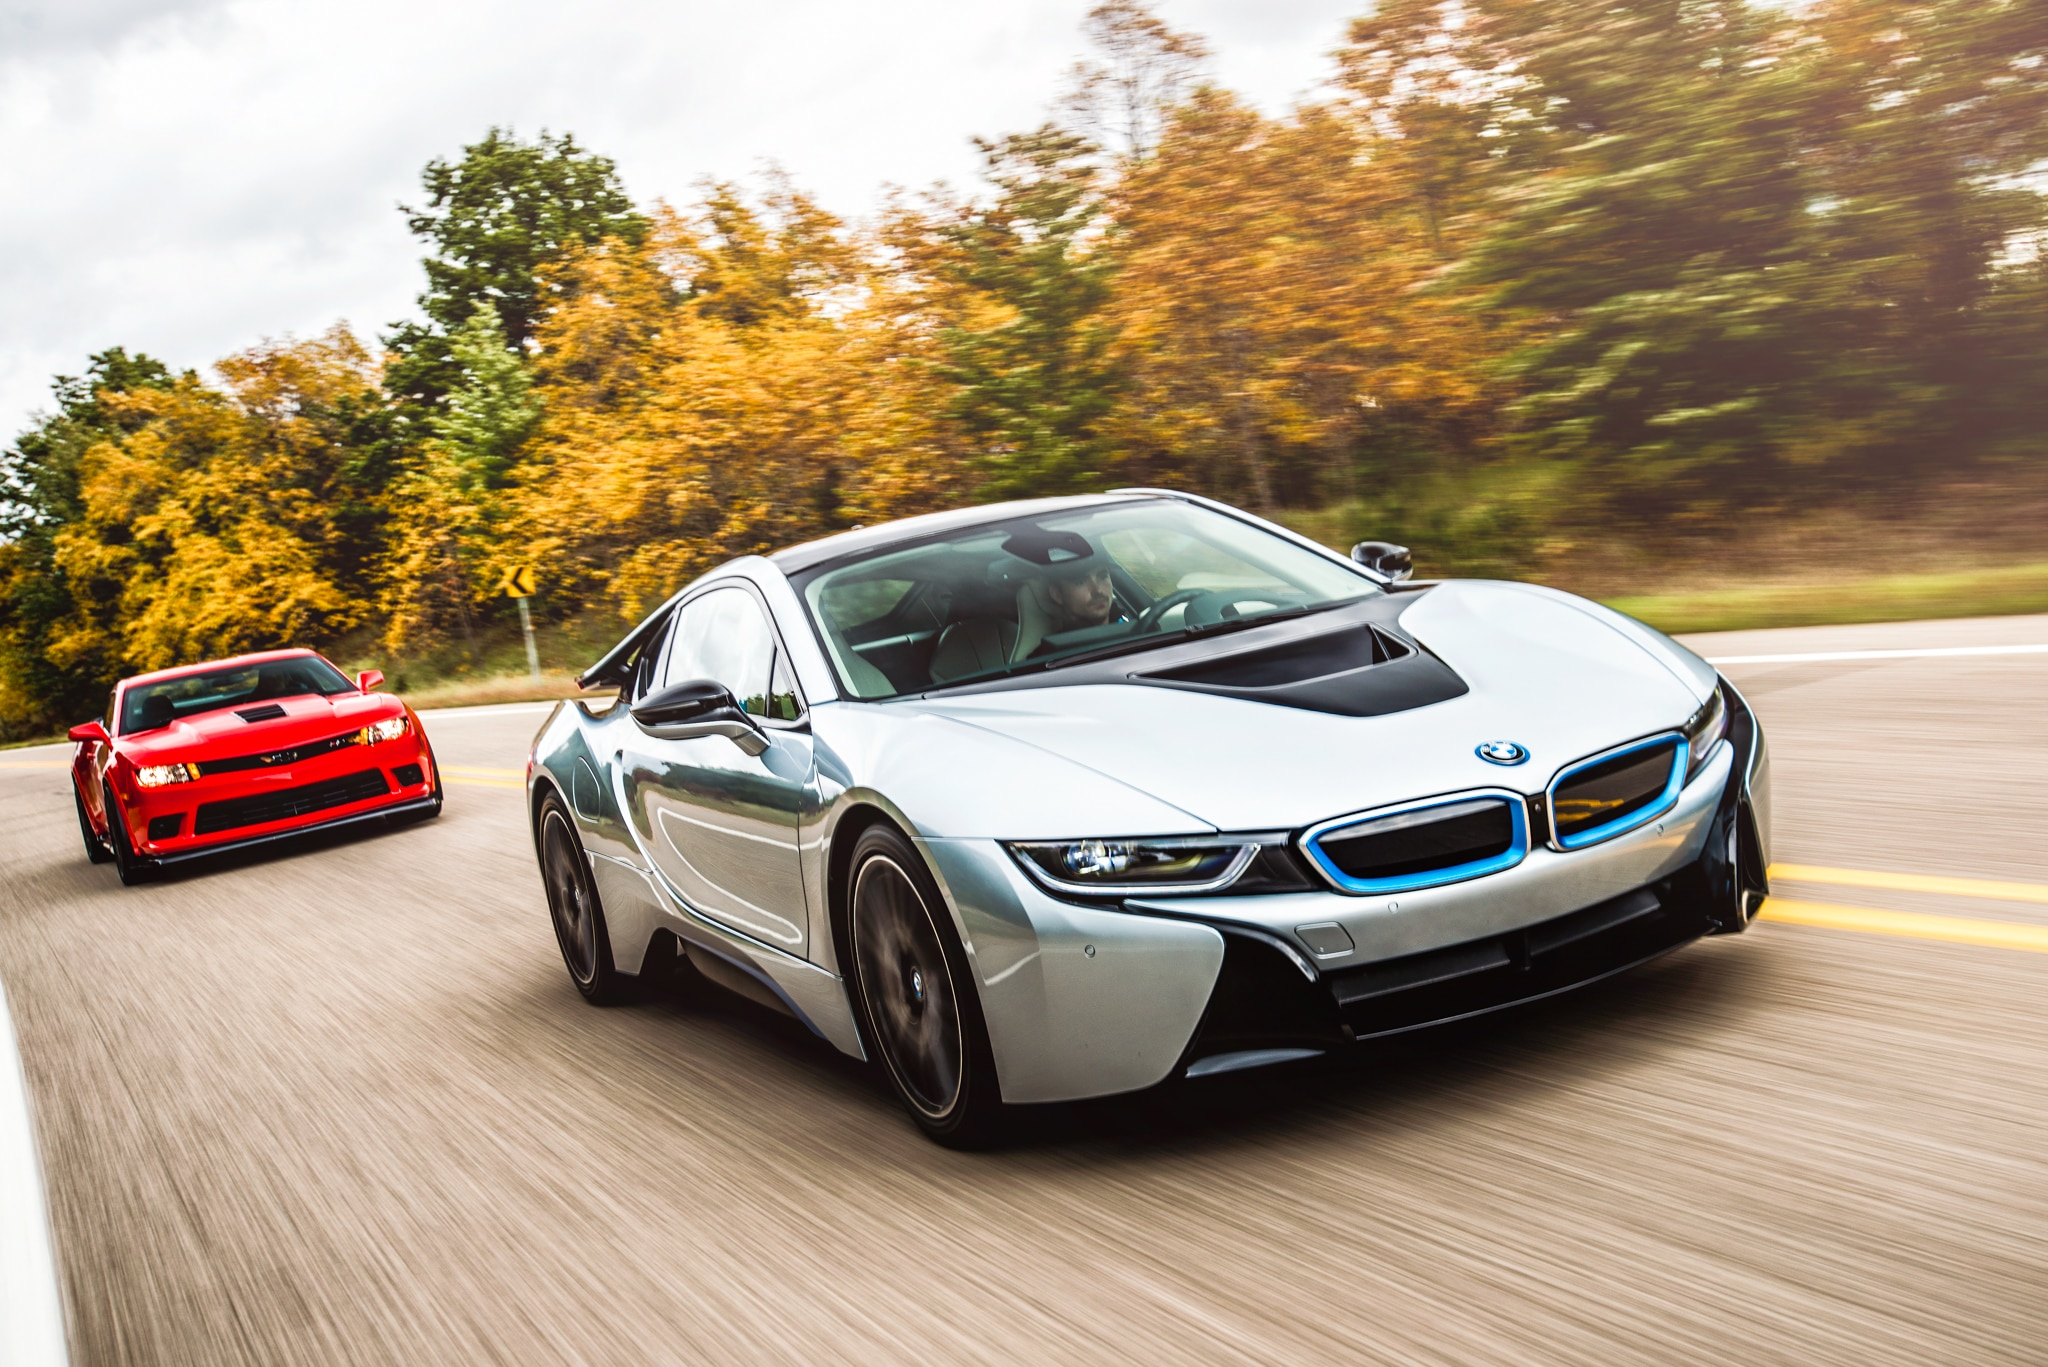 Wringing The Best From The BMW I8 Requires Almost No Fuss From The Driver  Either. Choose Your Preferred Mode And Let The Various Systems Seamlessly  Hustle ...